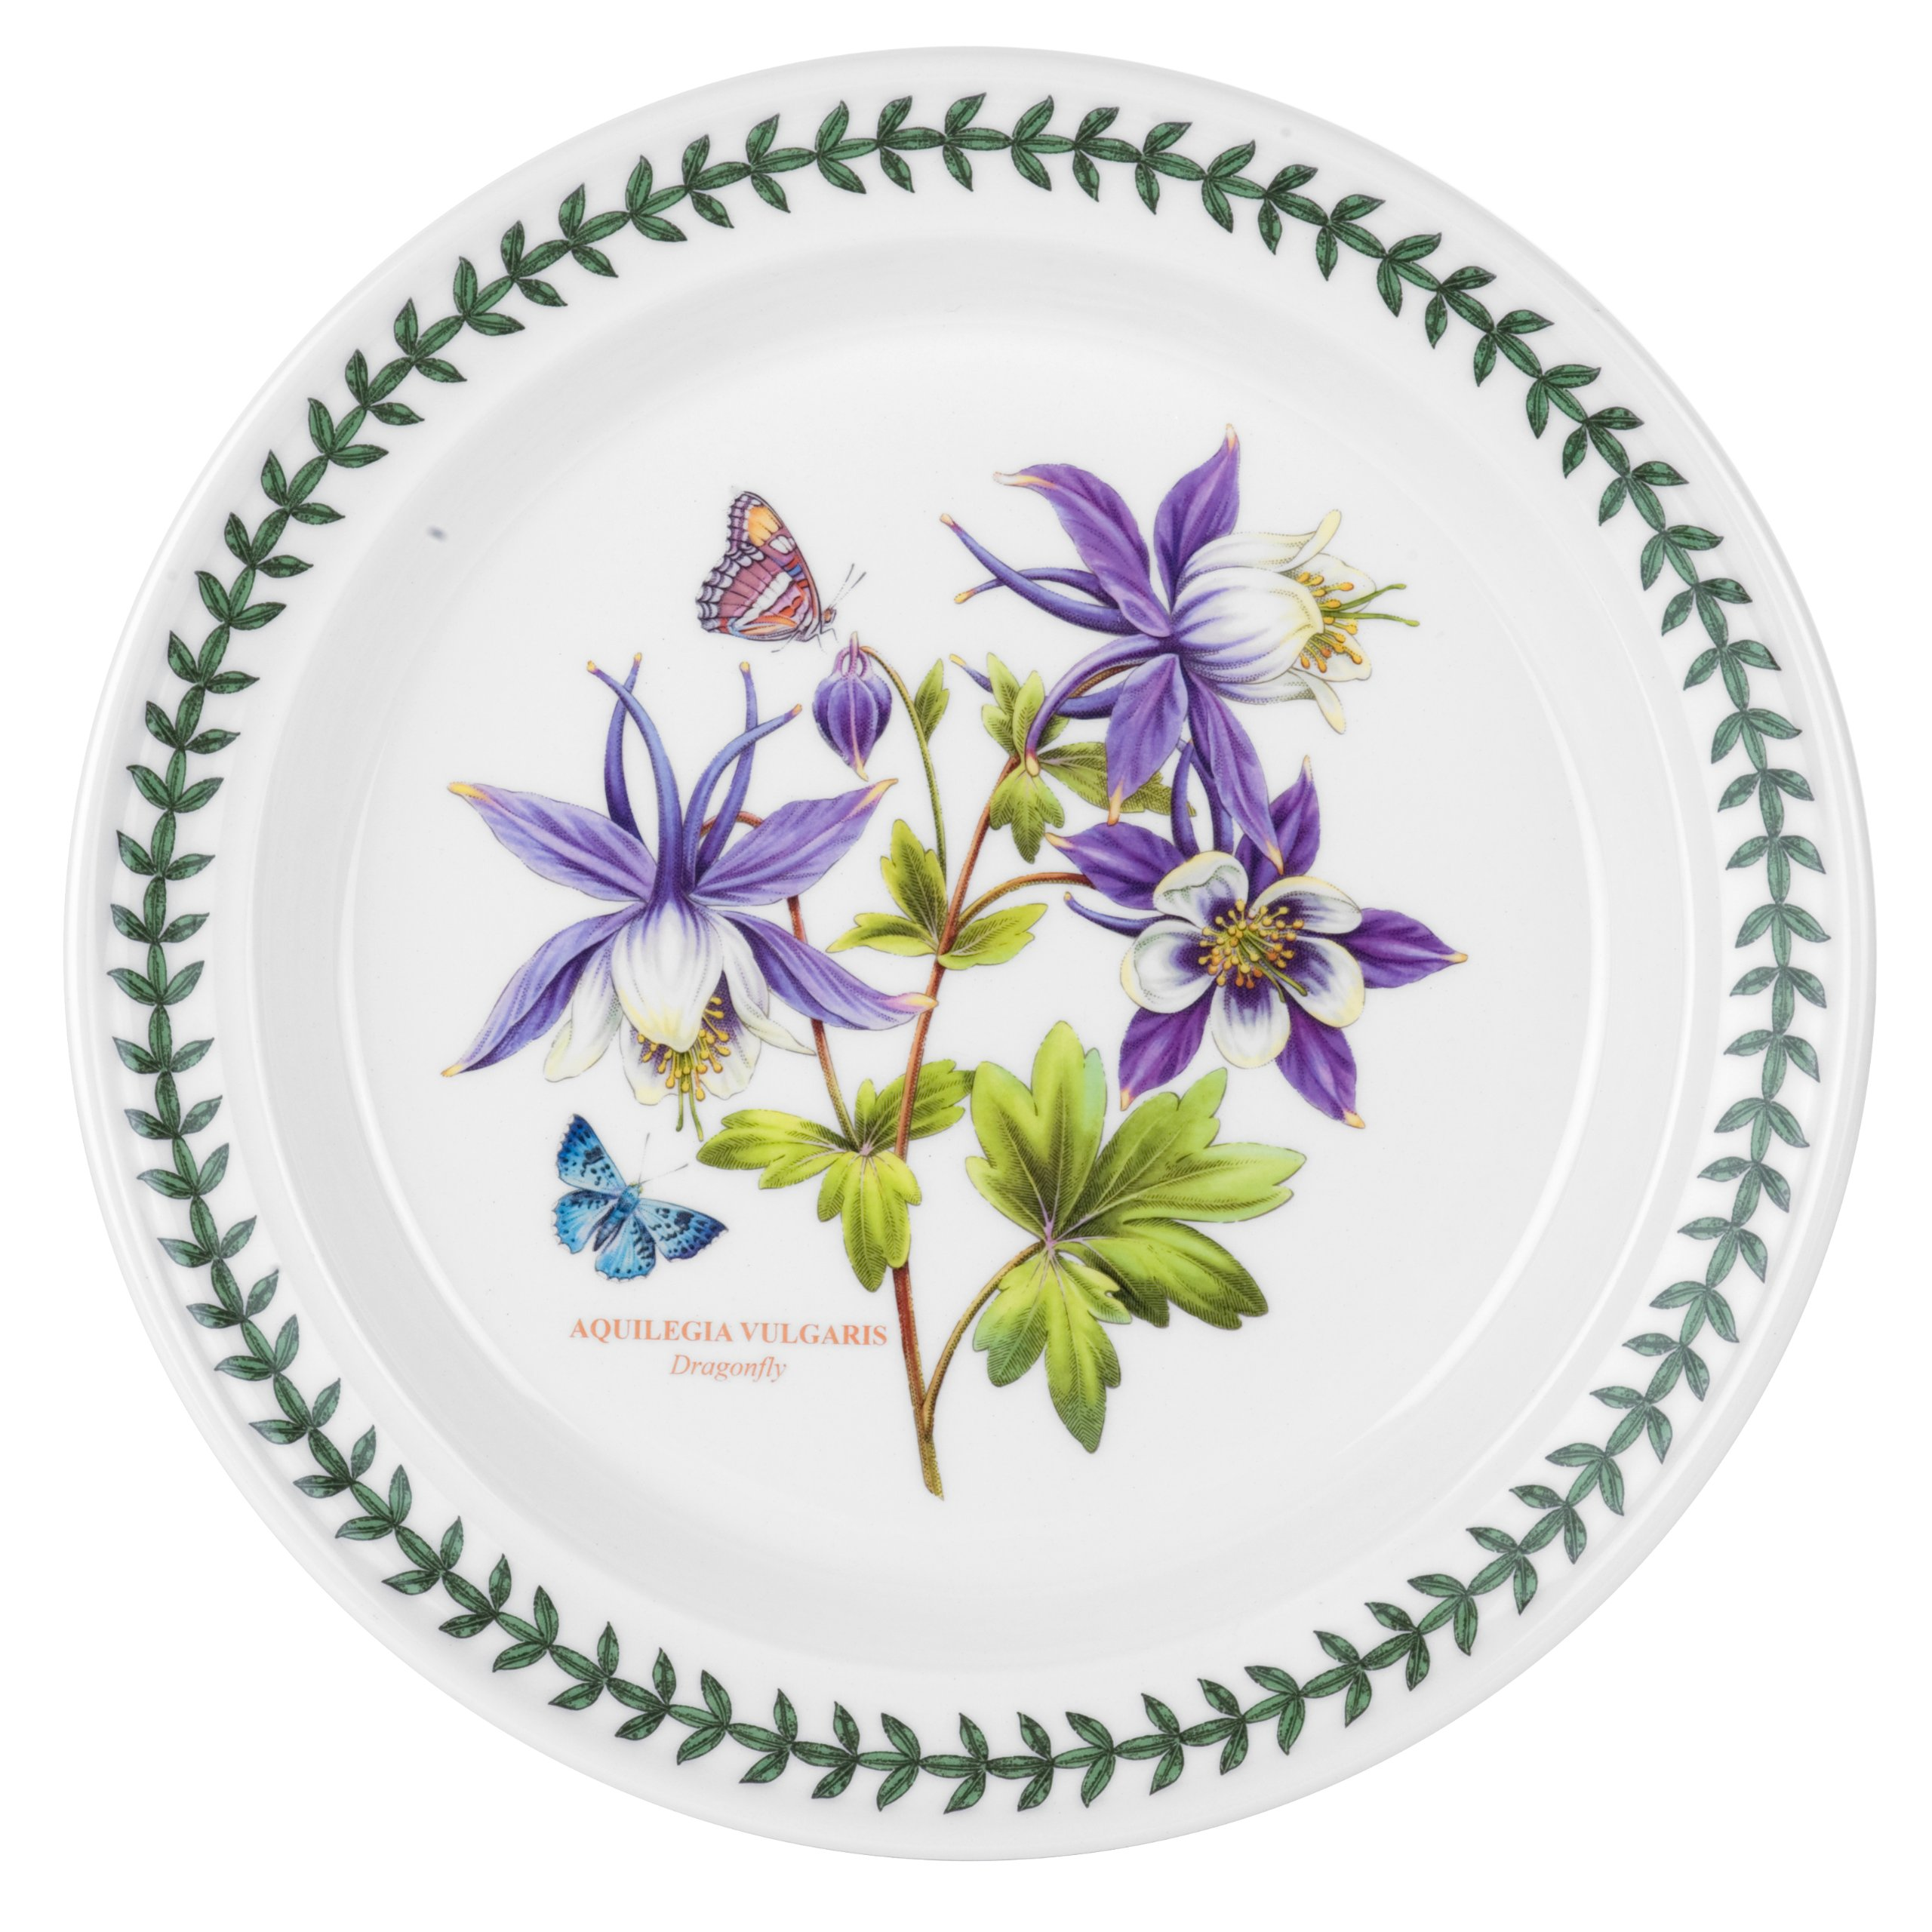 Portmeirion Exotic Botanic Garden Dinner Plate Set with 6 Assorted Motifs by Portmeirion